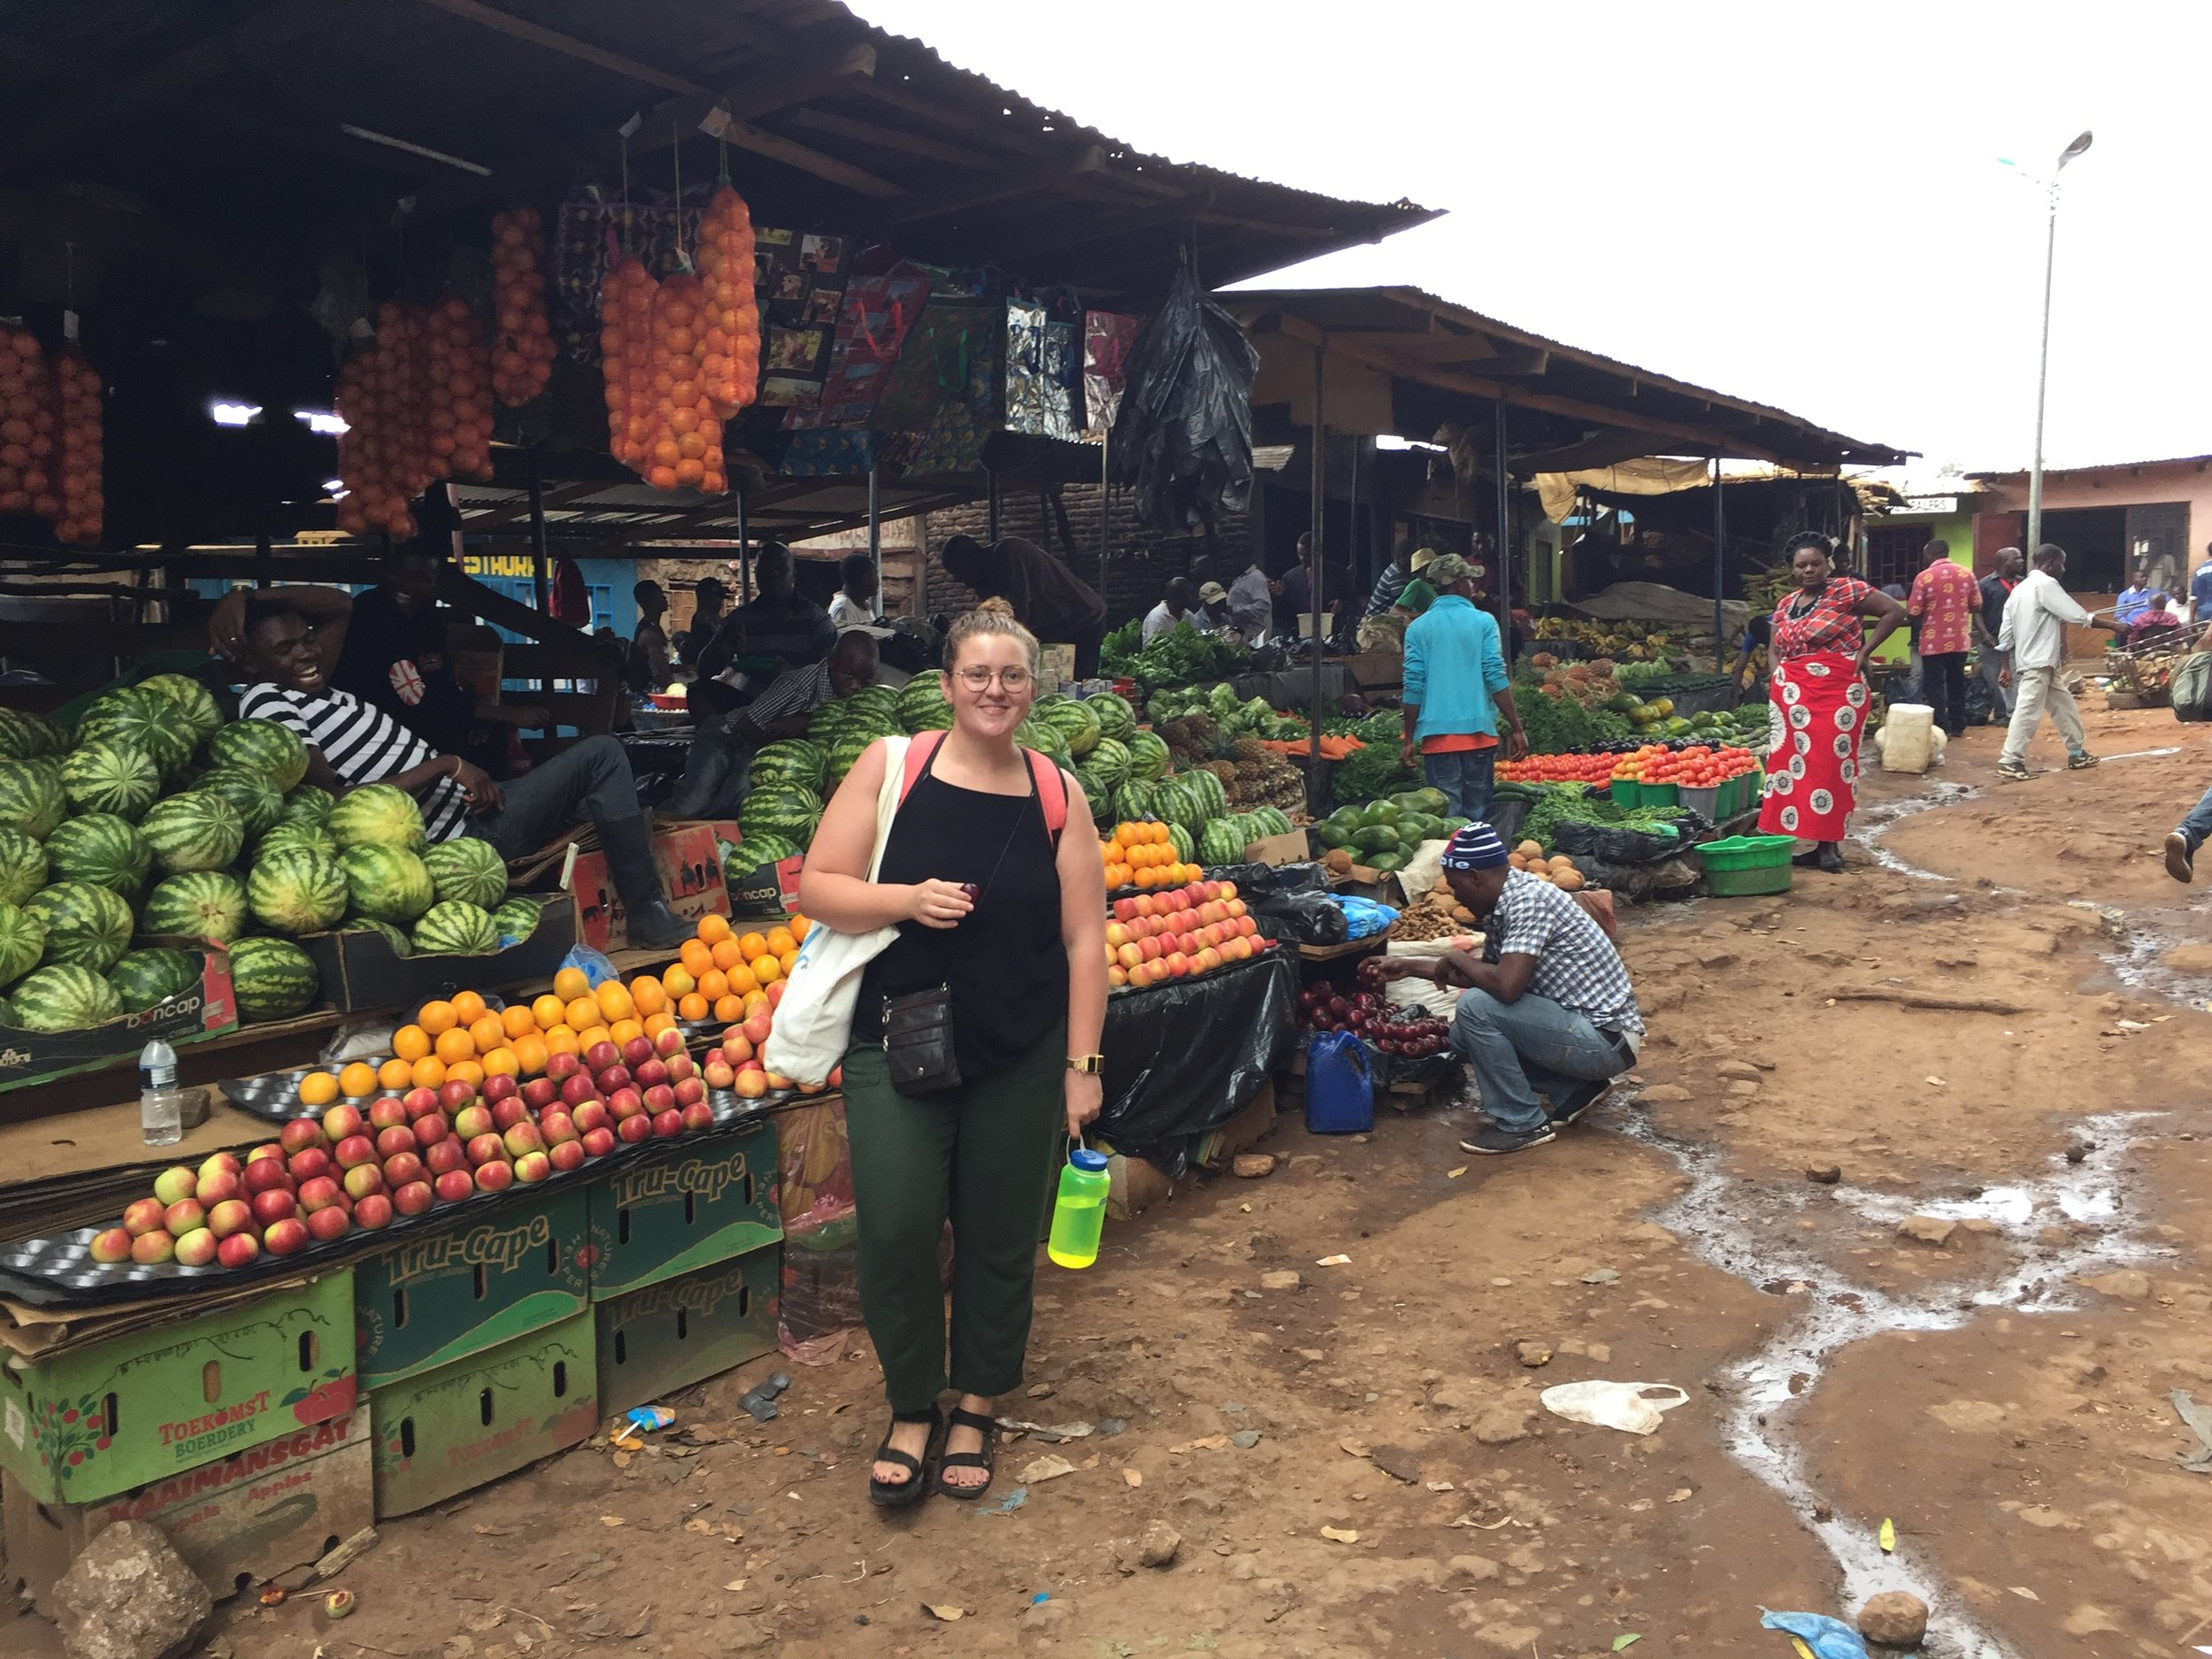 Shopping in the produce market in Lilongwe.